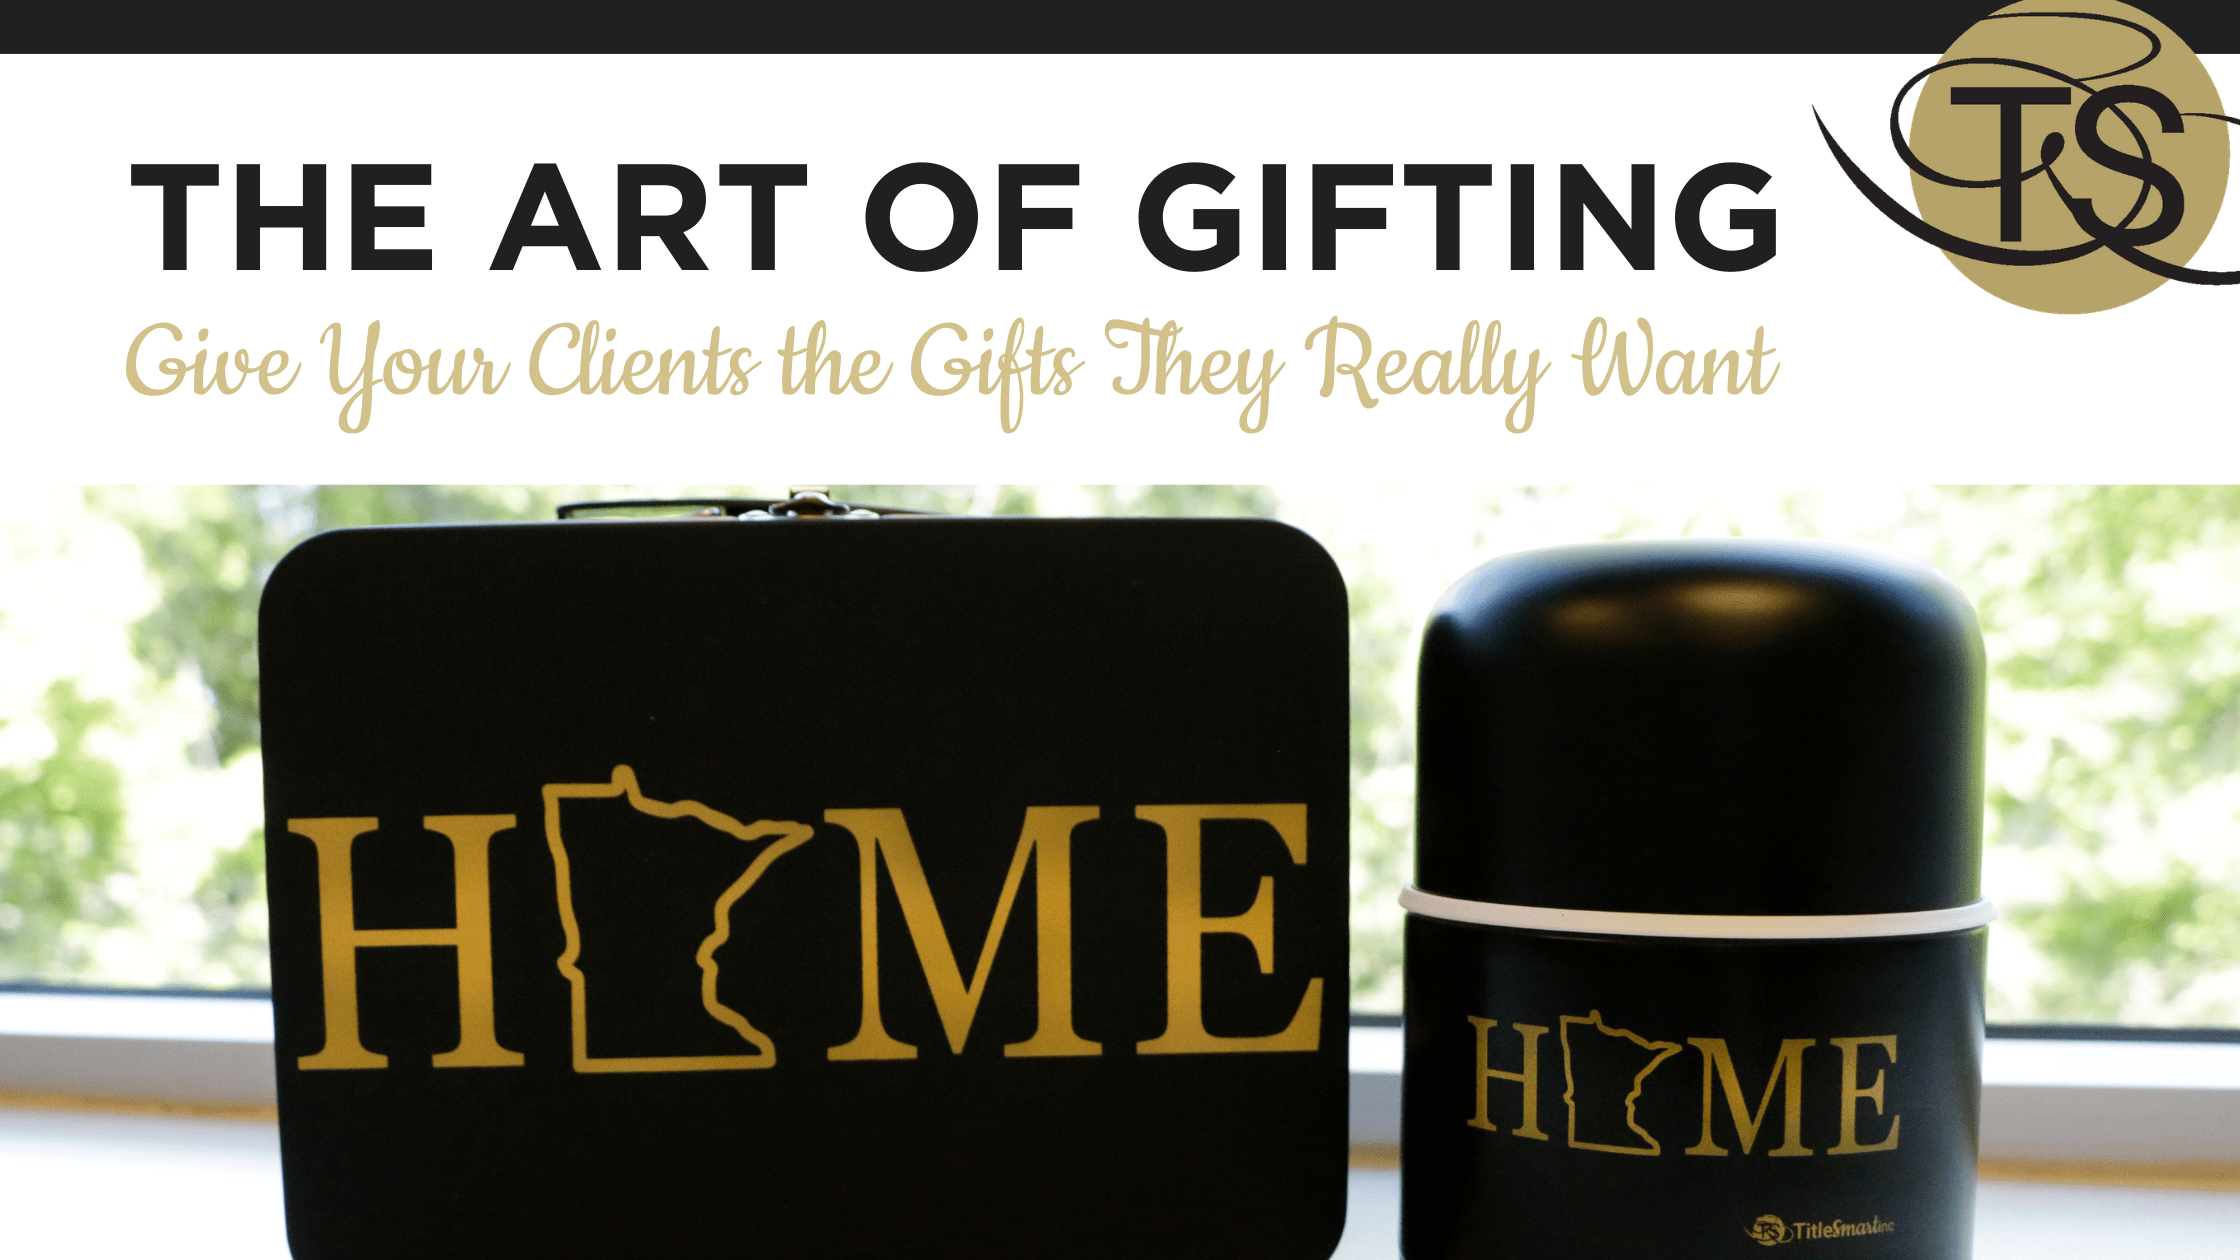 The Art of Gifting: Give Your Clients the Gifts They Really Want